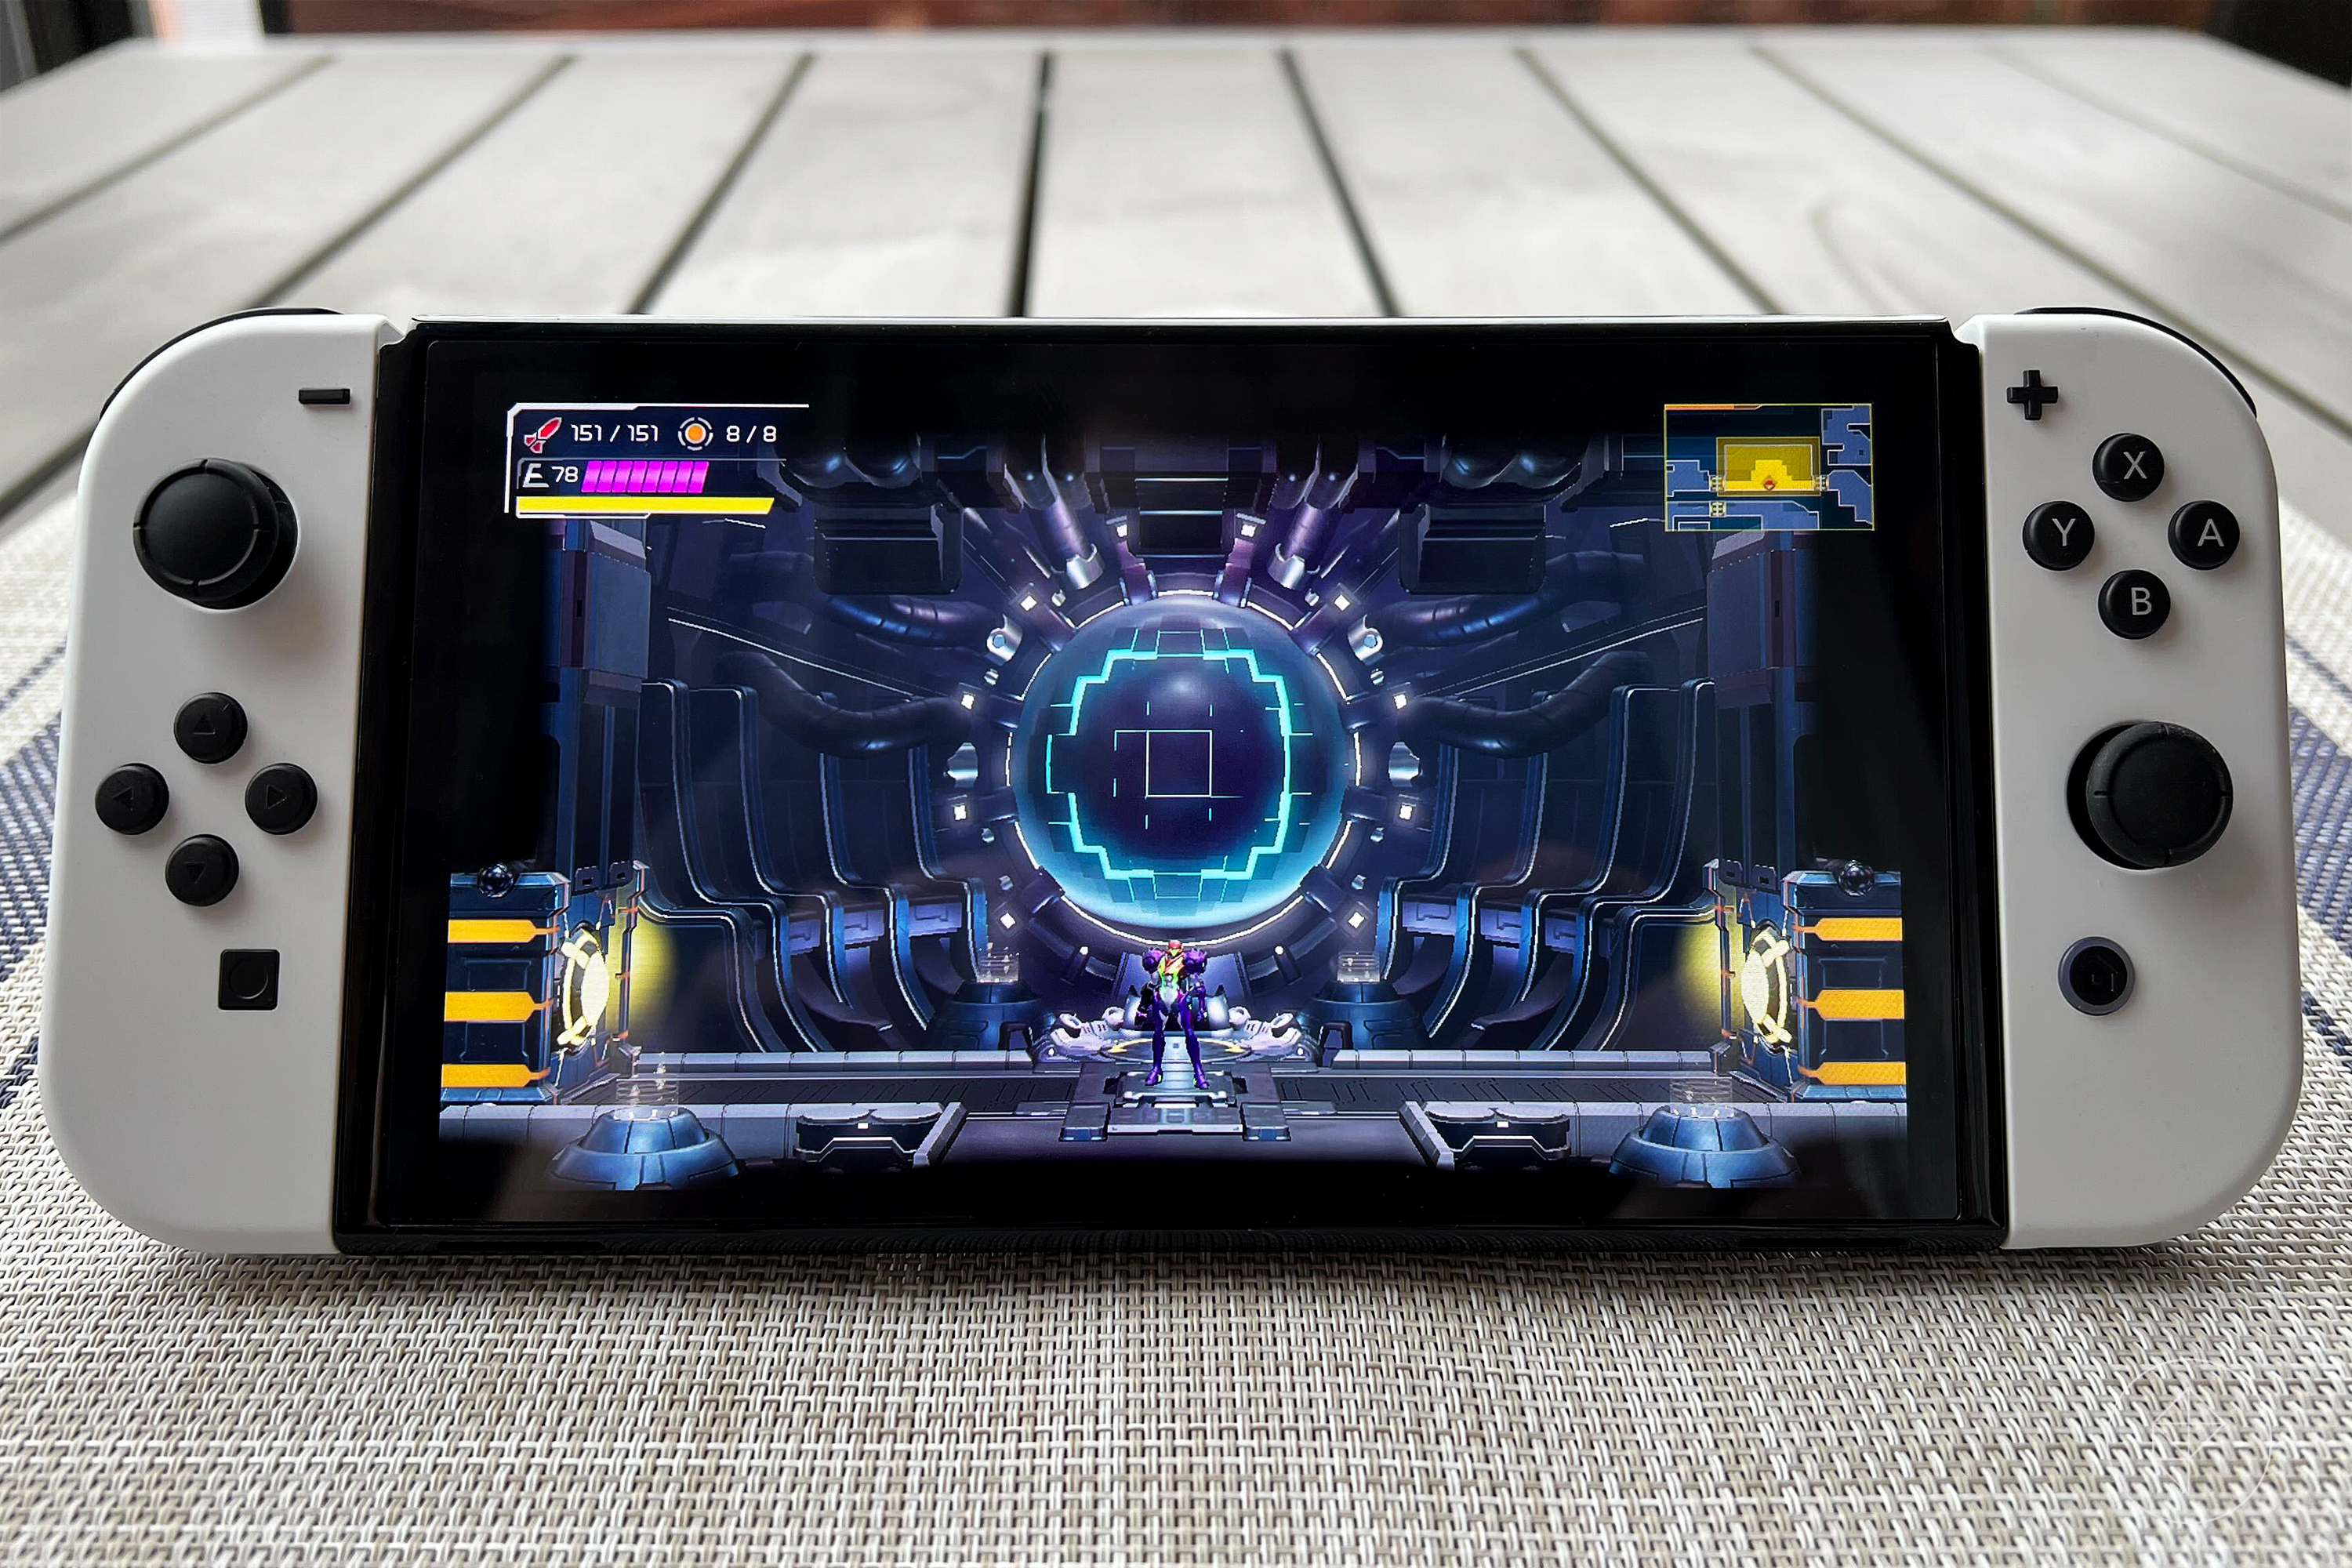 Metroid Dread on an OLED Nintendo Switch with white Joy-Cons